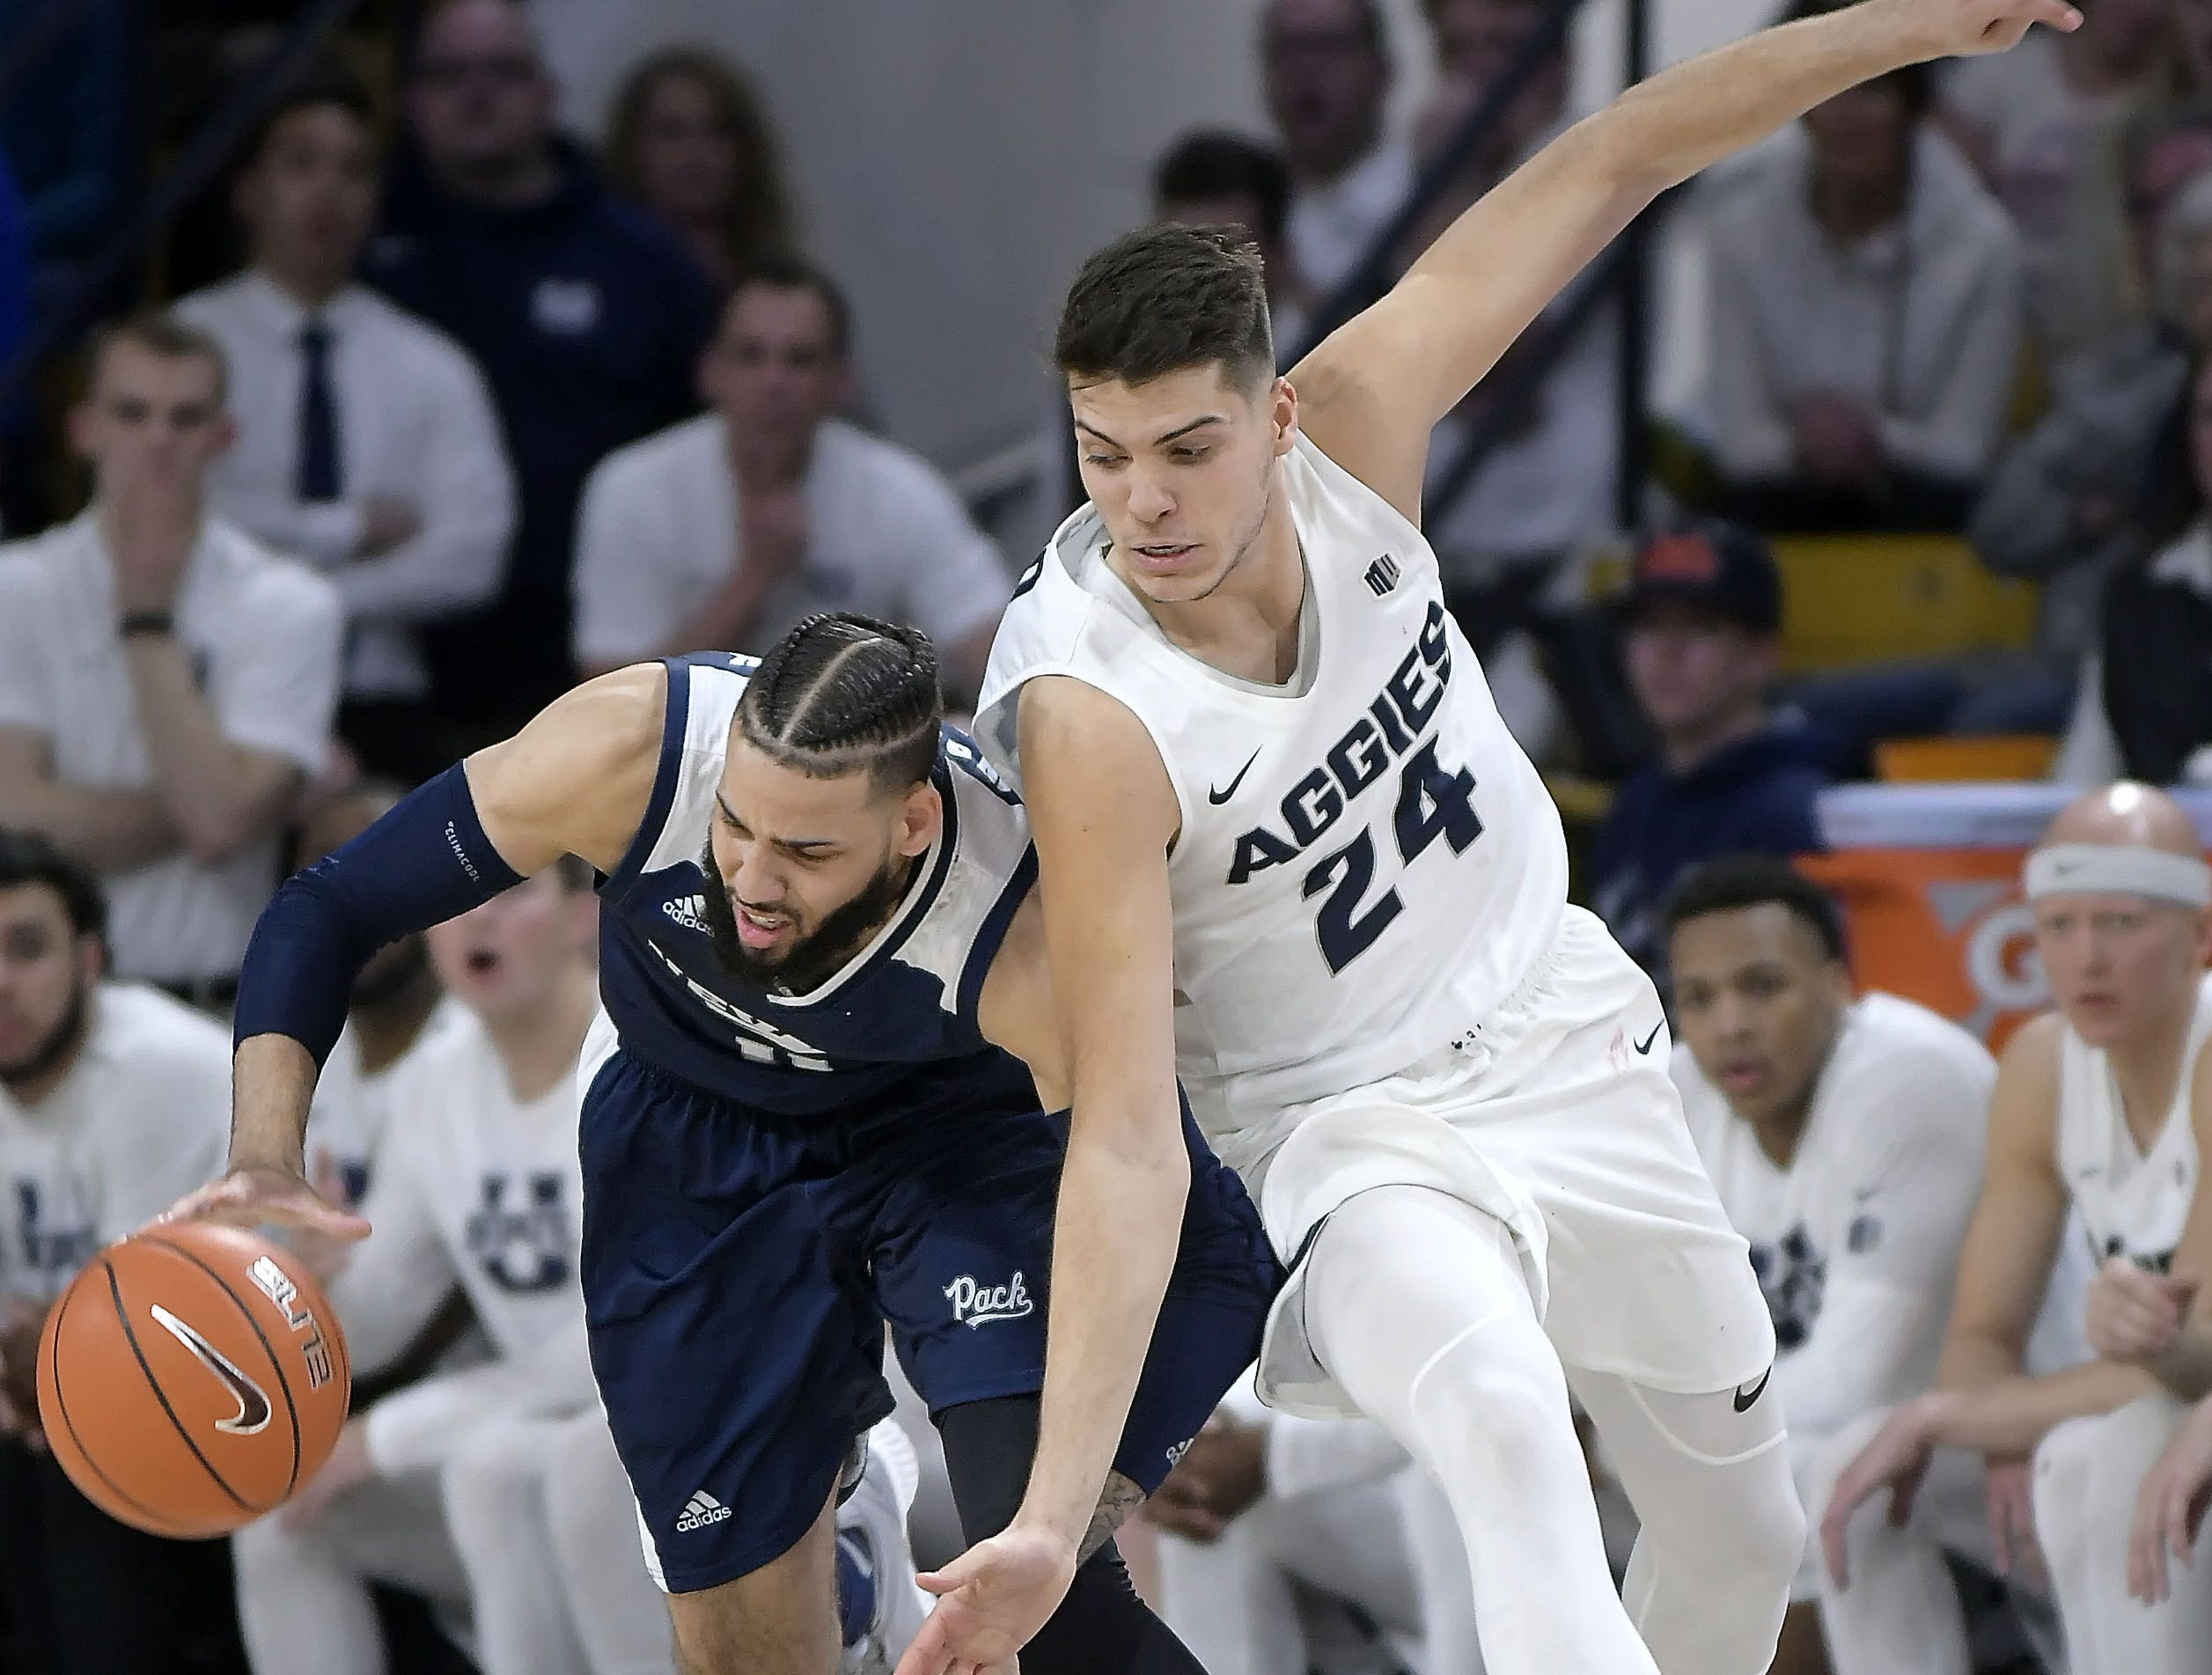 Nevada forward Cody Martin (11) gets fouled by Utah State guard Diogo Brito (24) during an NCAA college basketball game Saturday, March 2, 2019, in Logan, Utah.